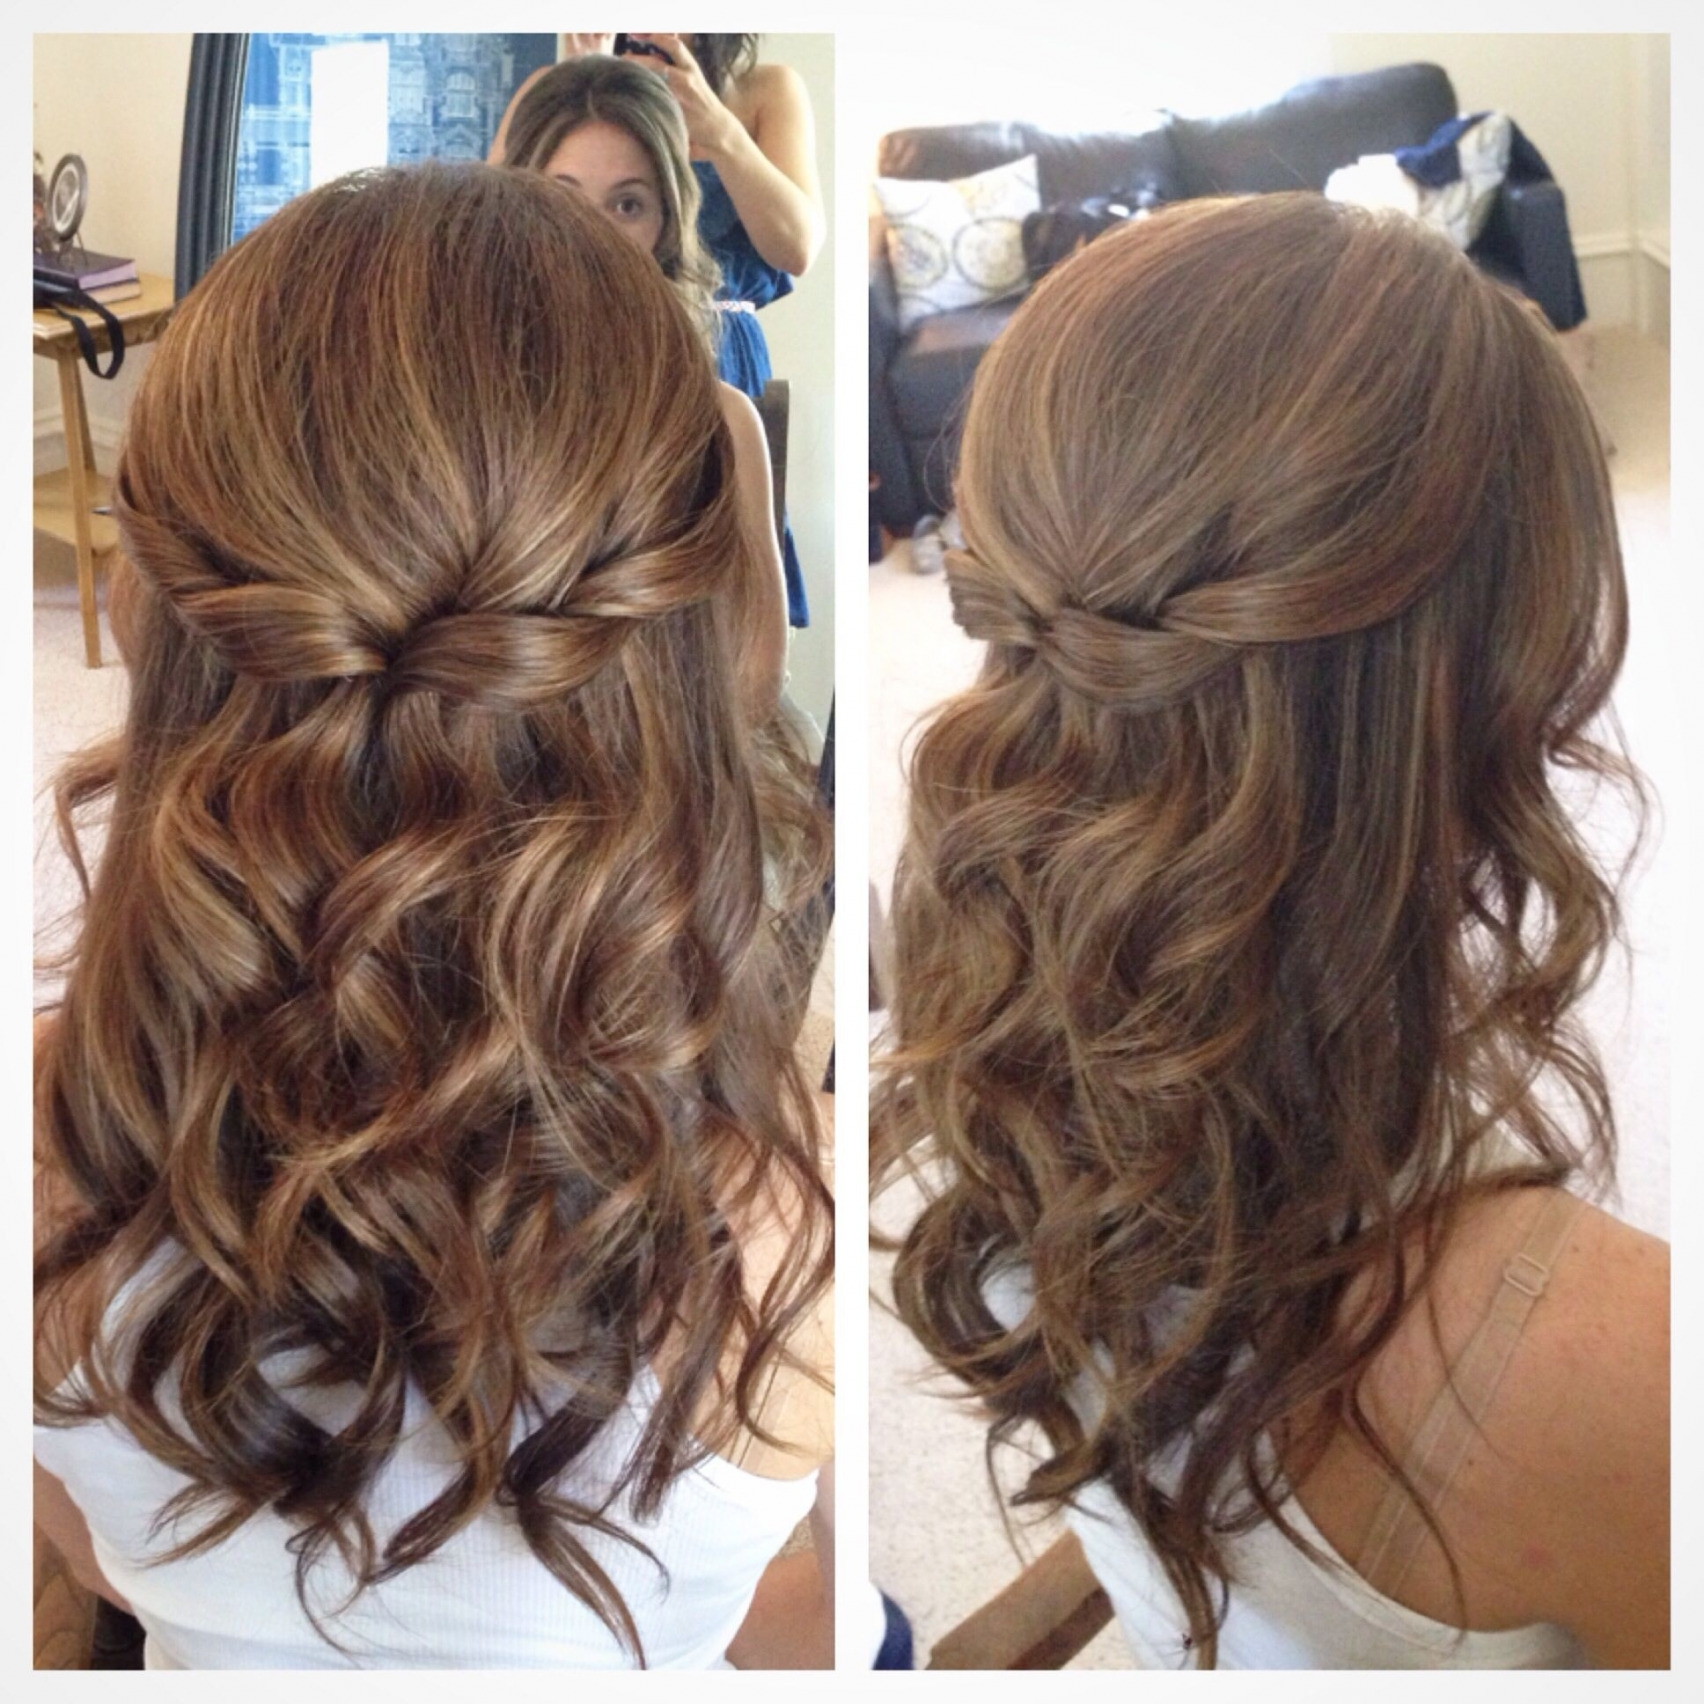 Wedding Hairstyles For Medium Length Hair Half Up New Half Up Half Intended For Well Liked Half Up Half Down Wedding Hairstyles For Medium Length Hair (View 4 of 15)